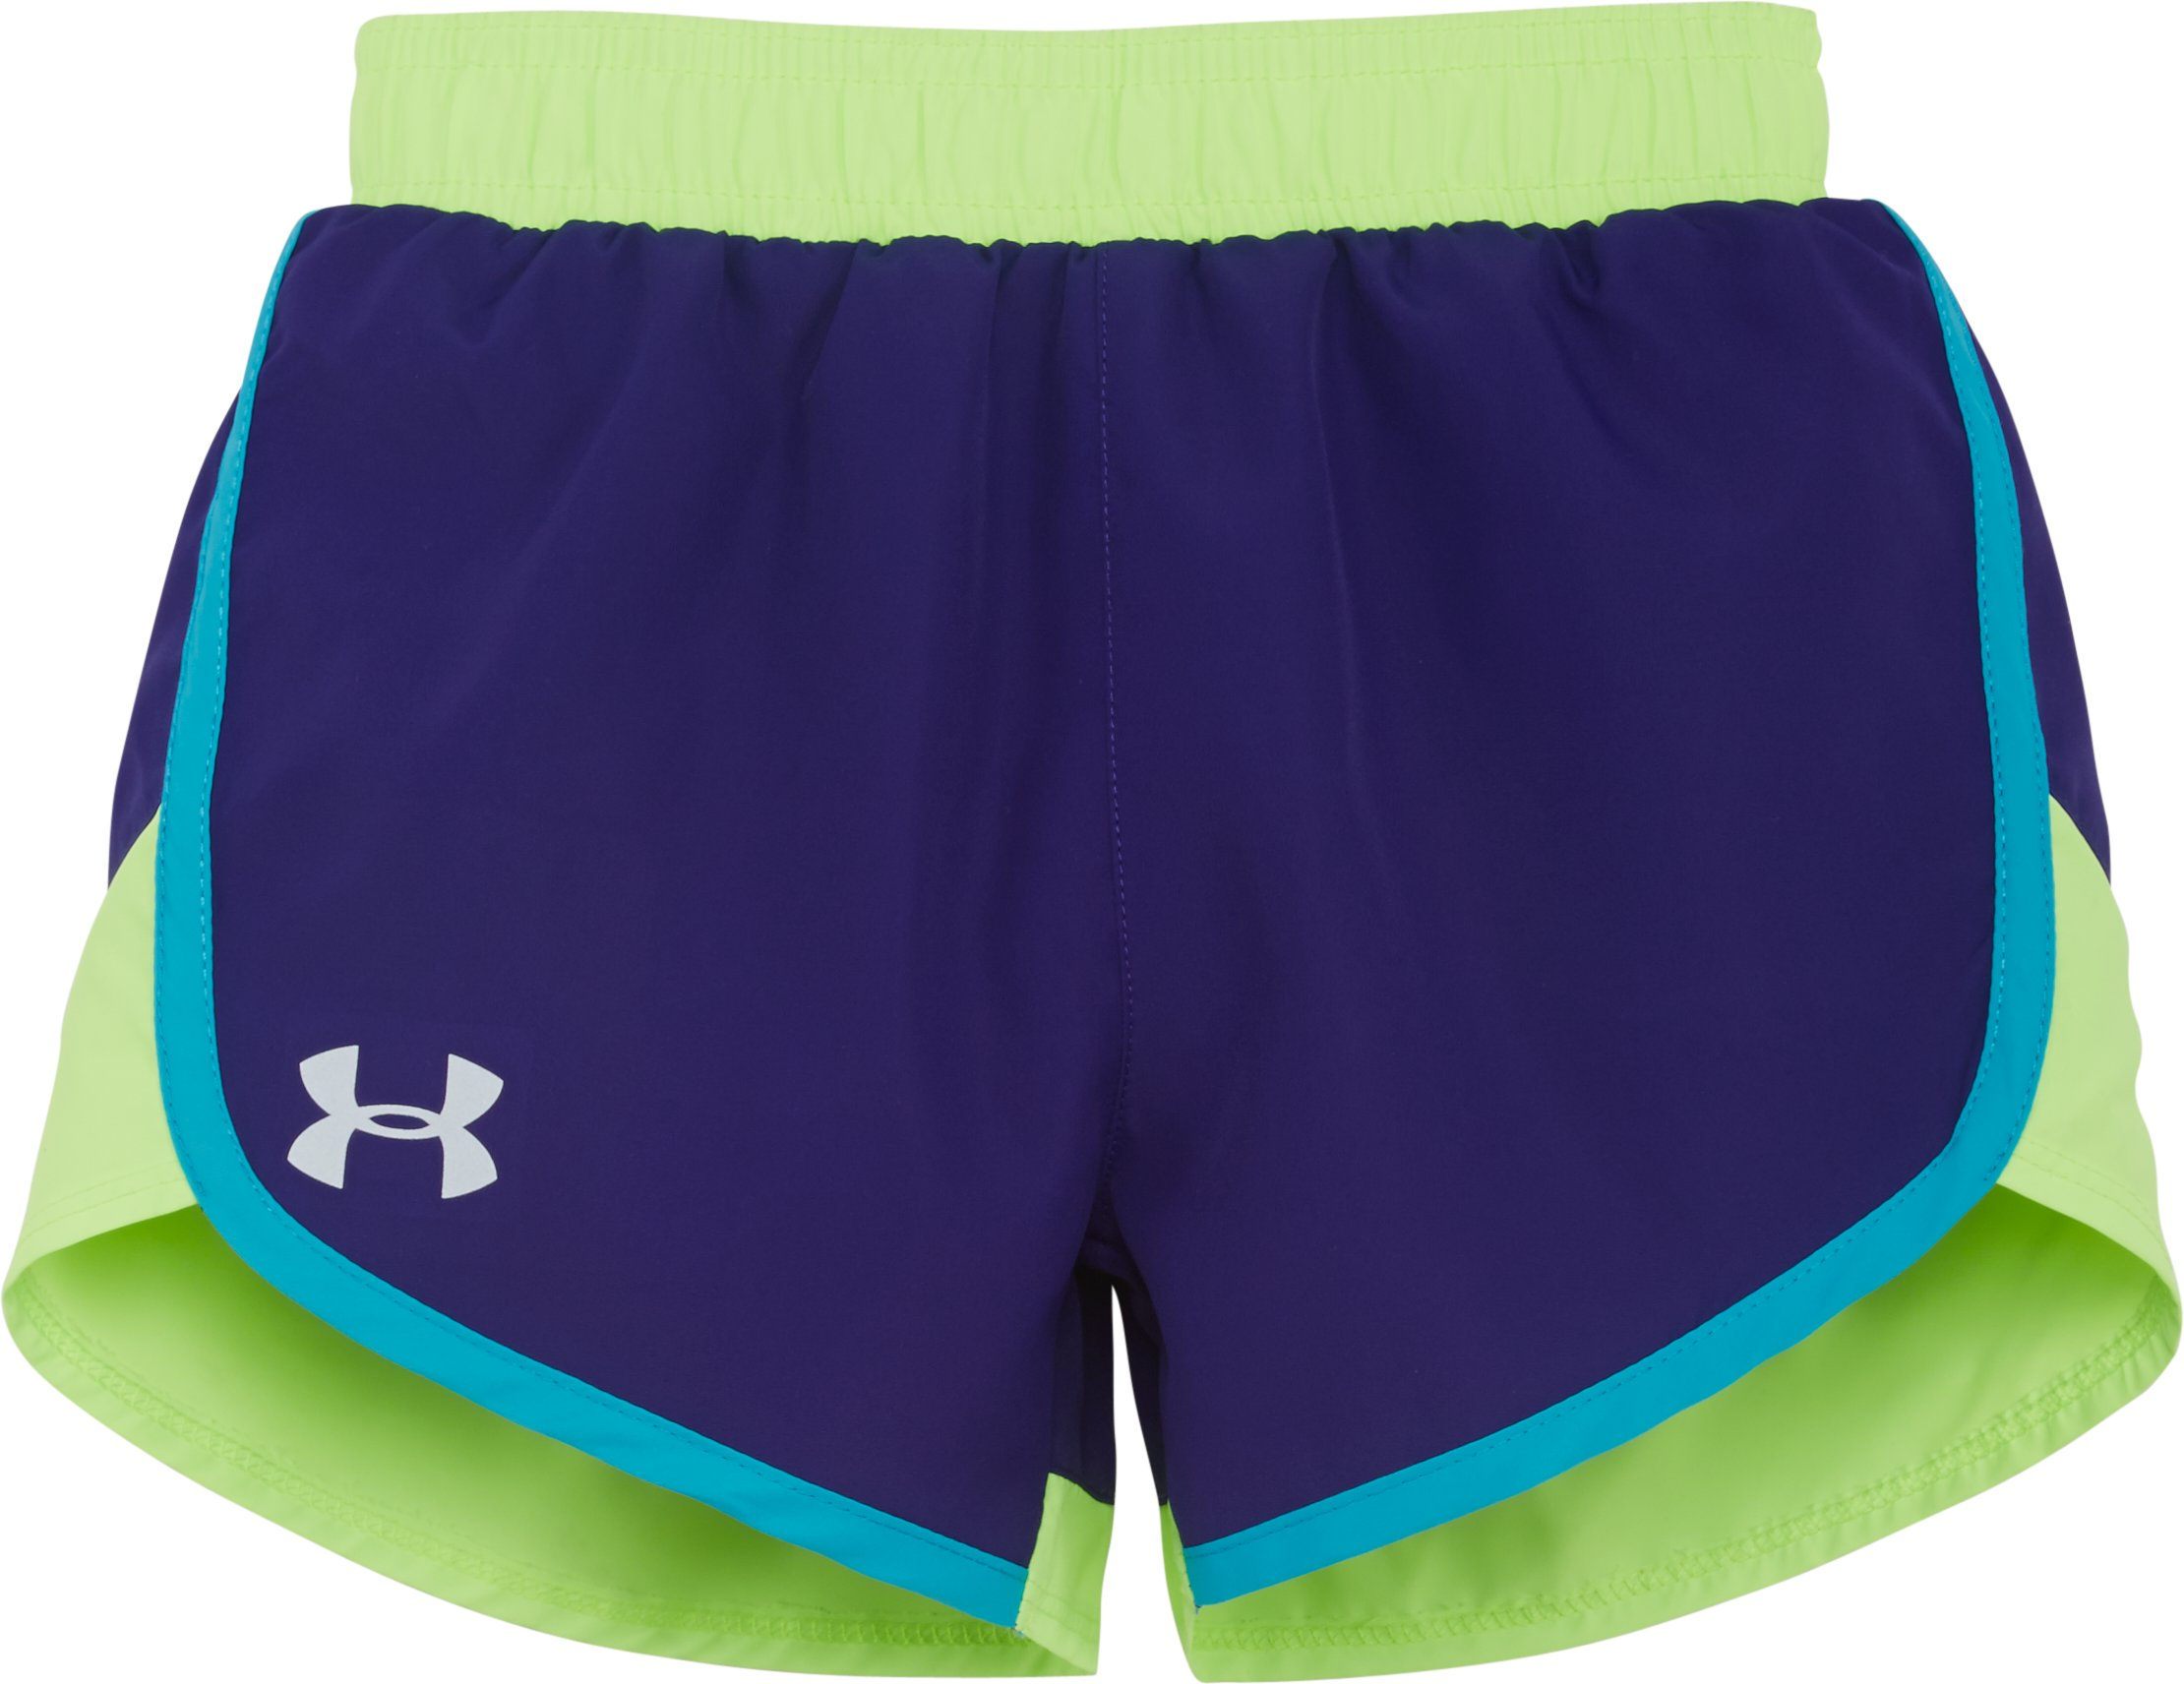 Girls' Toddler UA Fast Lane Shorts, PURPLE SKY